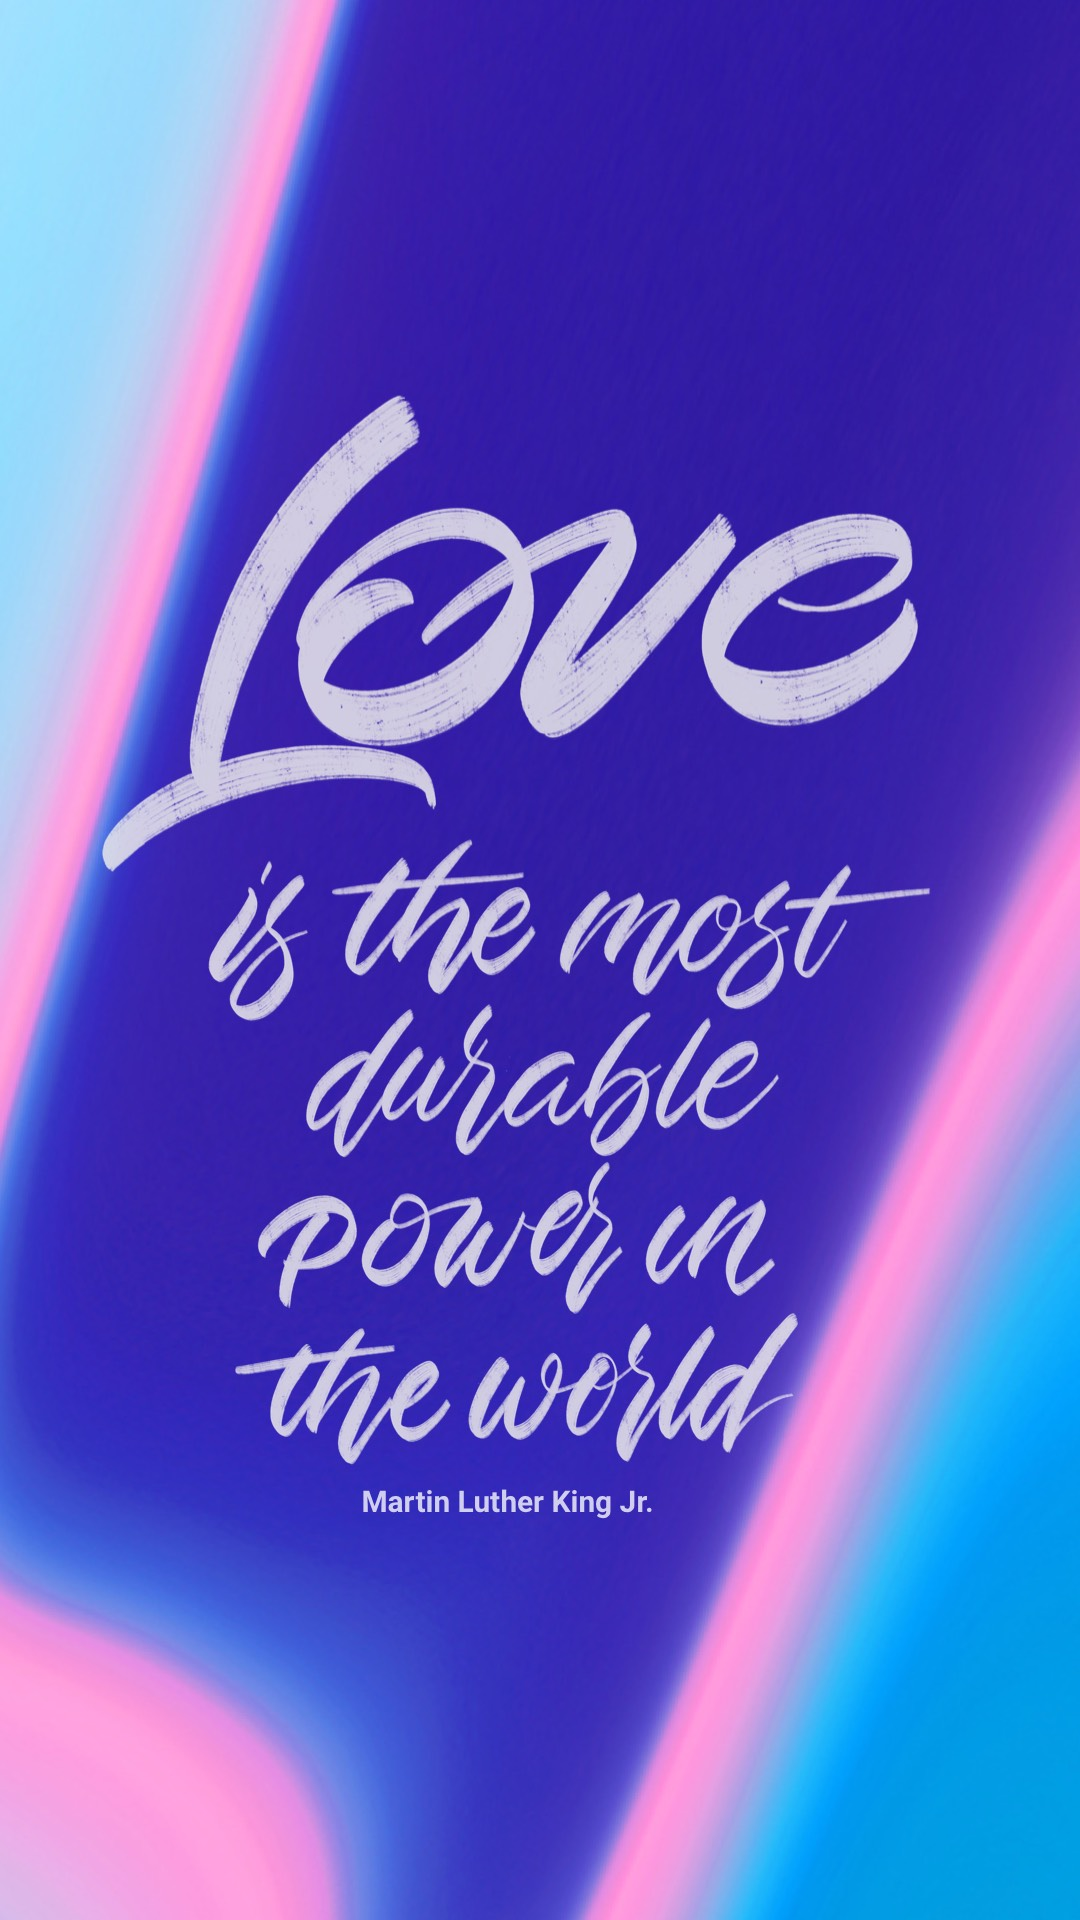 Love is the most durable power phone wallpaper